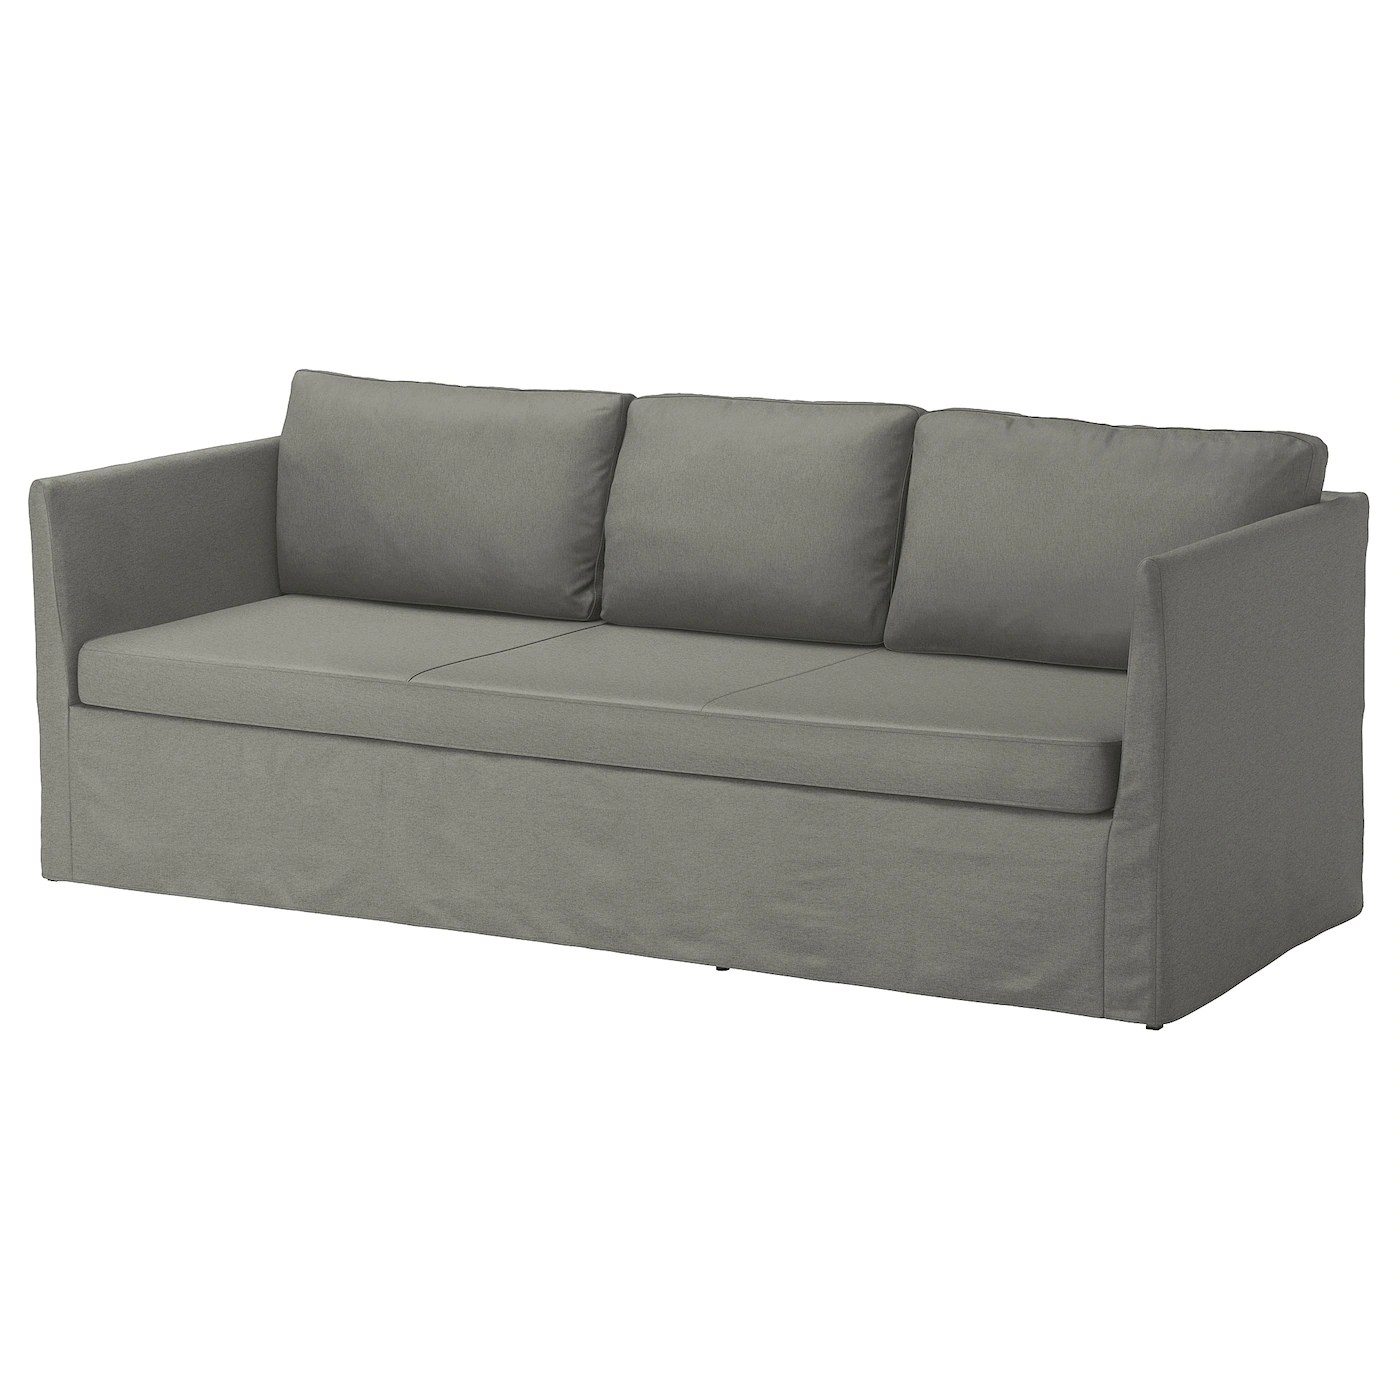 backamo 3 seater sofa slipcover solid wood sets online ikea brathult seat you sit comfortably thanks to the resilient foam and springy